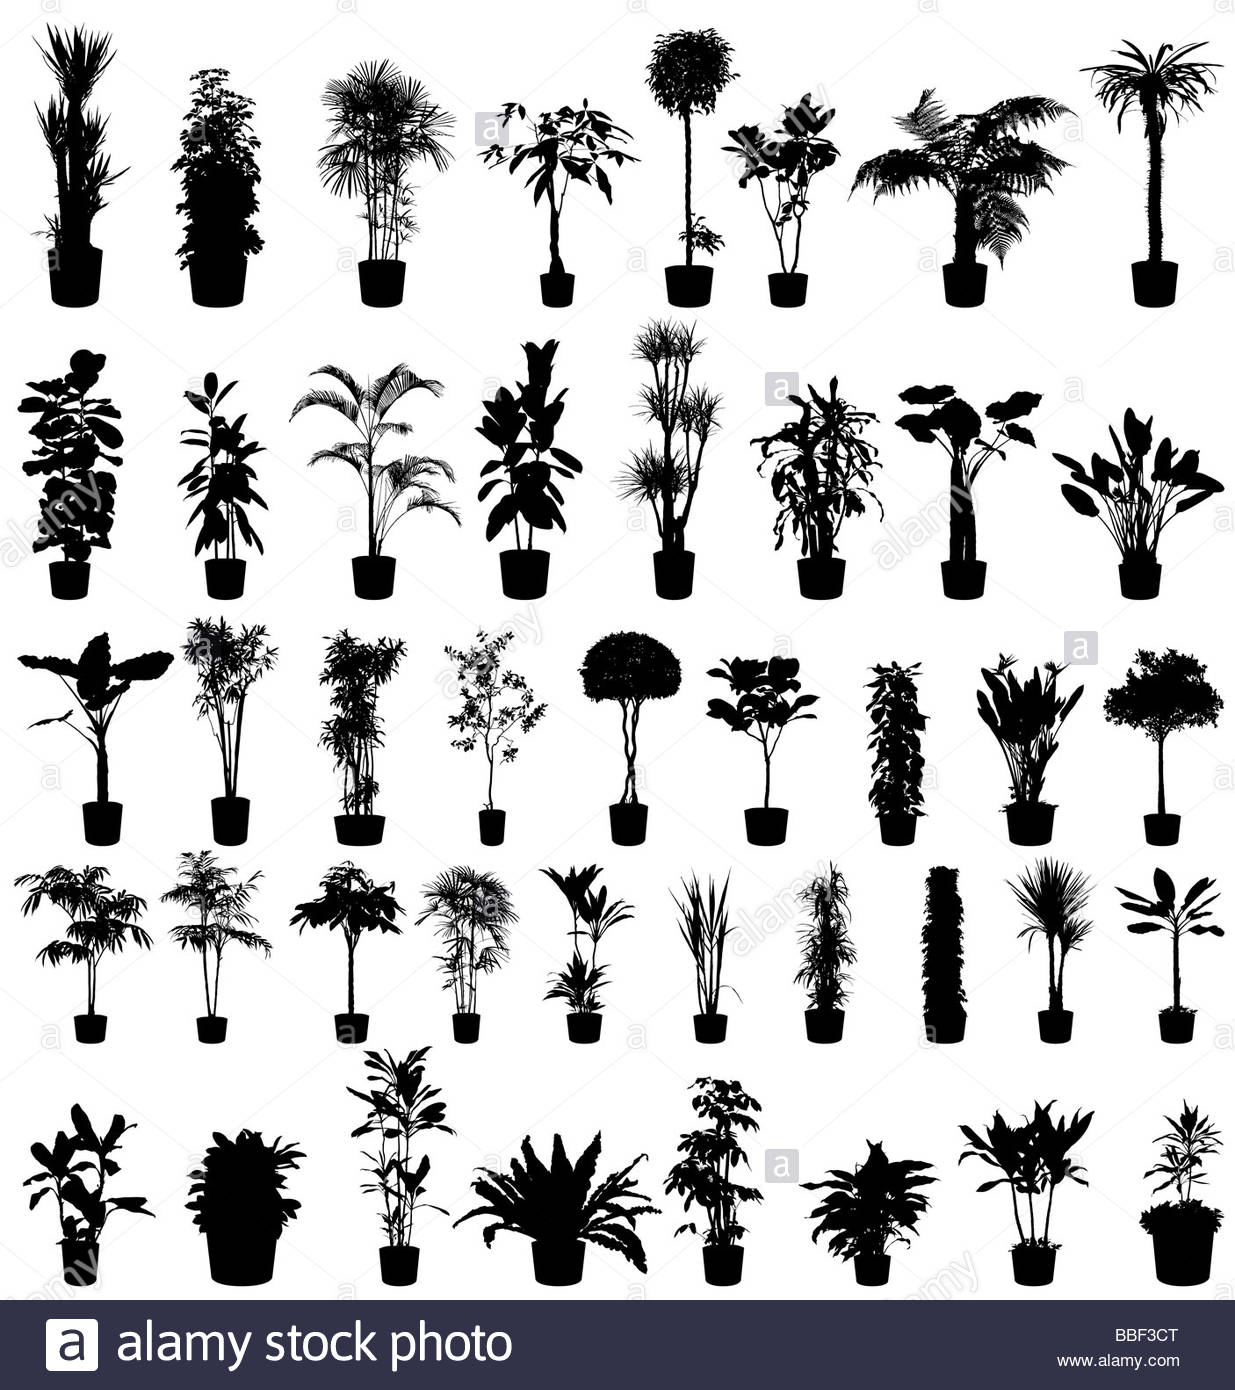 Grands arbres et plantes silhouettes collection Photo Stock